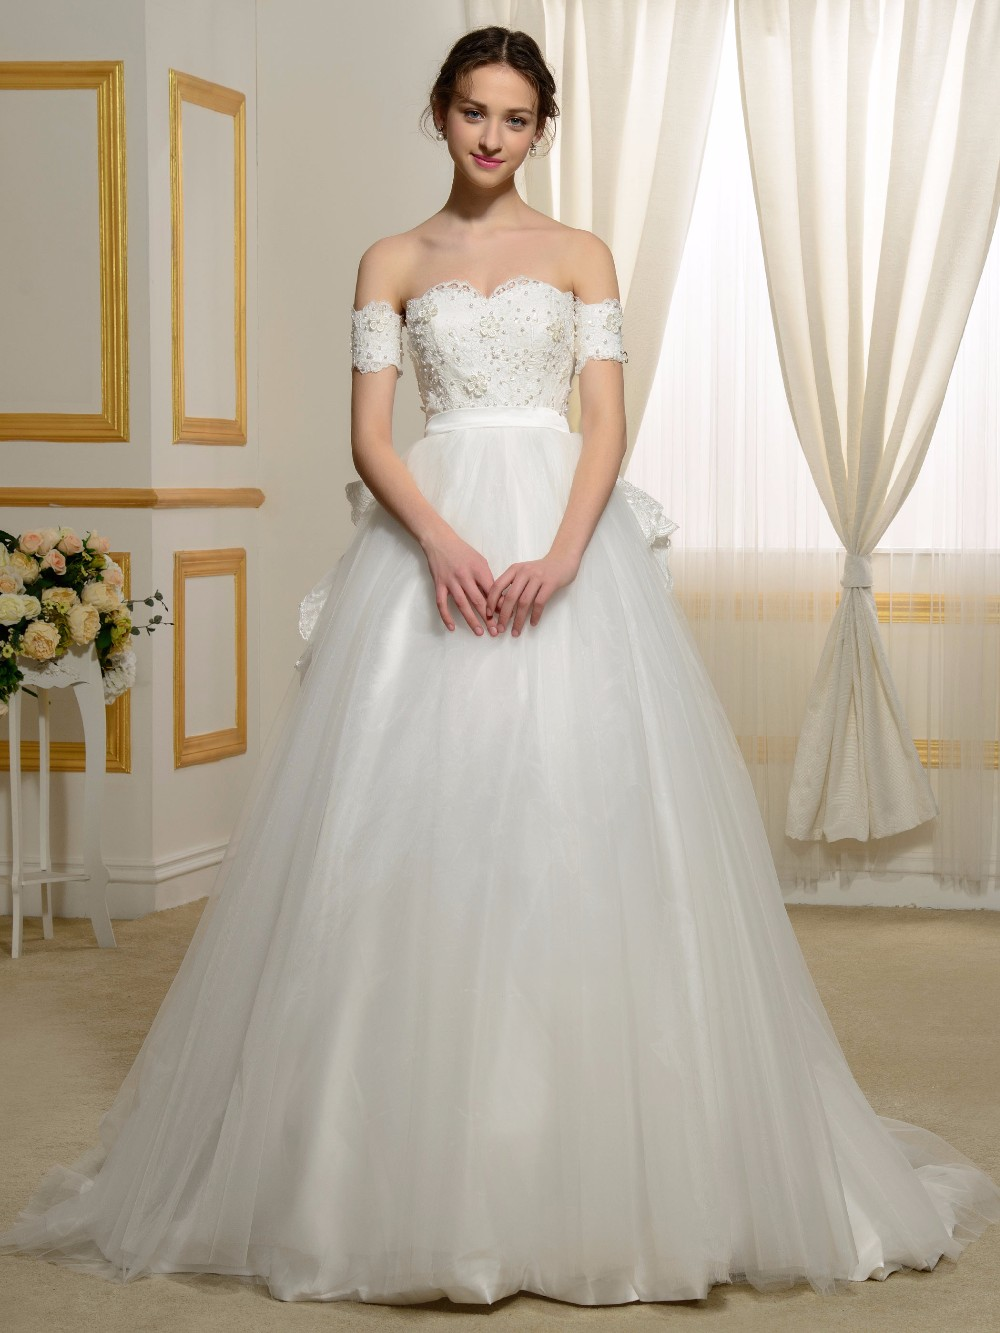 Wedding Fairy Wedding Dress online buy wholesale fairytale wedding dresses from china 2016 elegant white ball gown sweetheart neck beaded lace sweep train bridal